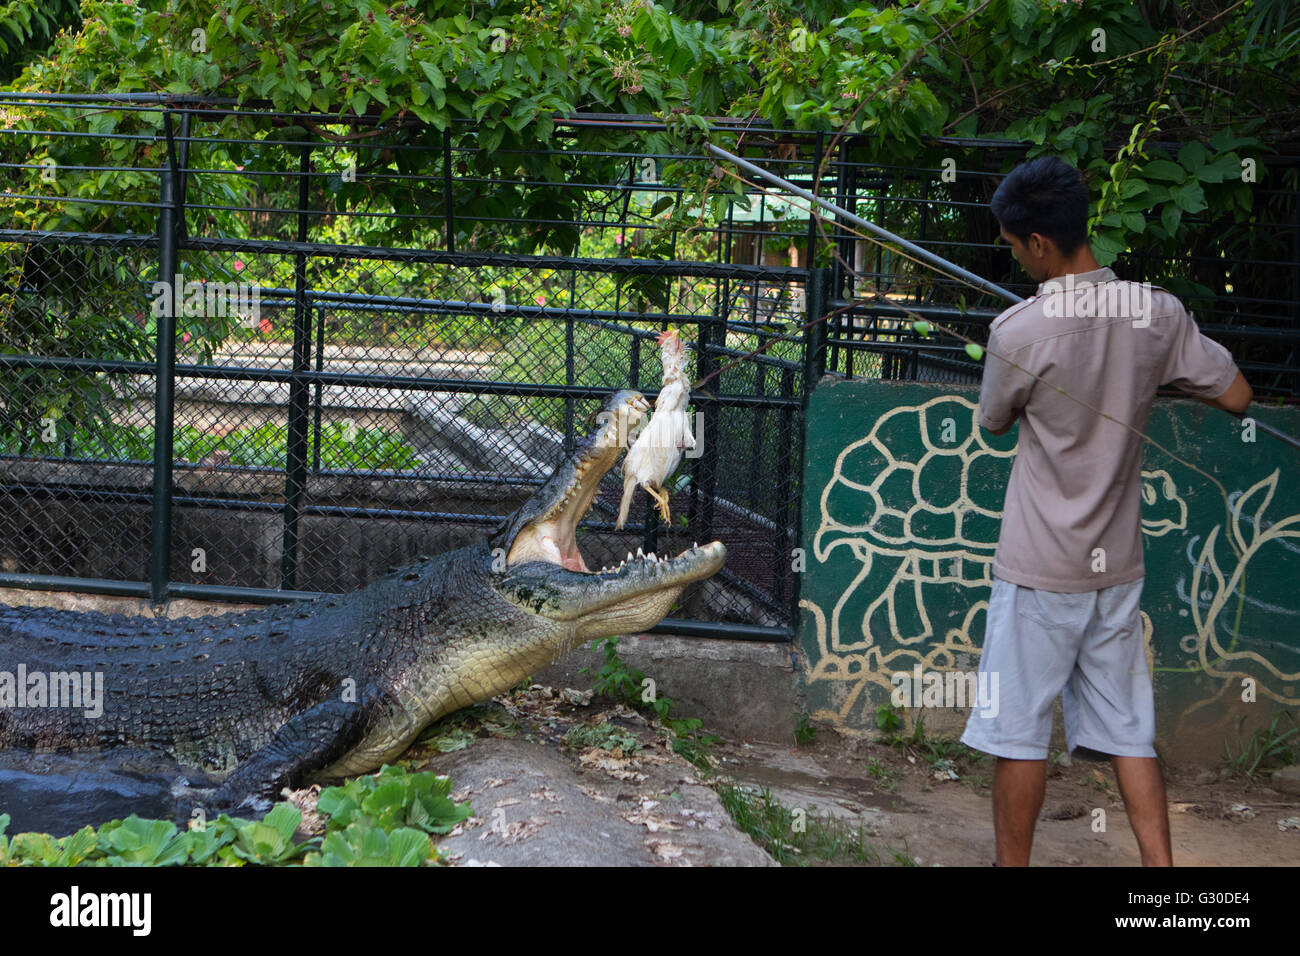 Feeding time for the 3rd largest captive saltwater crocodile in the Philippines named Lapu-Lapu - Stock Image